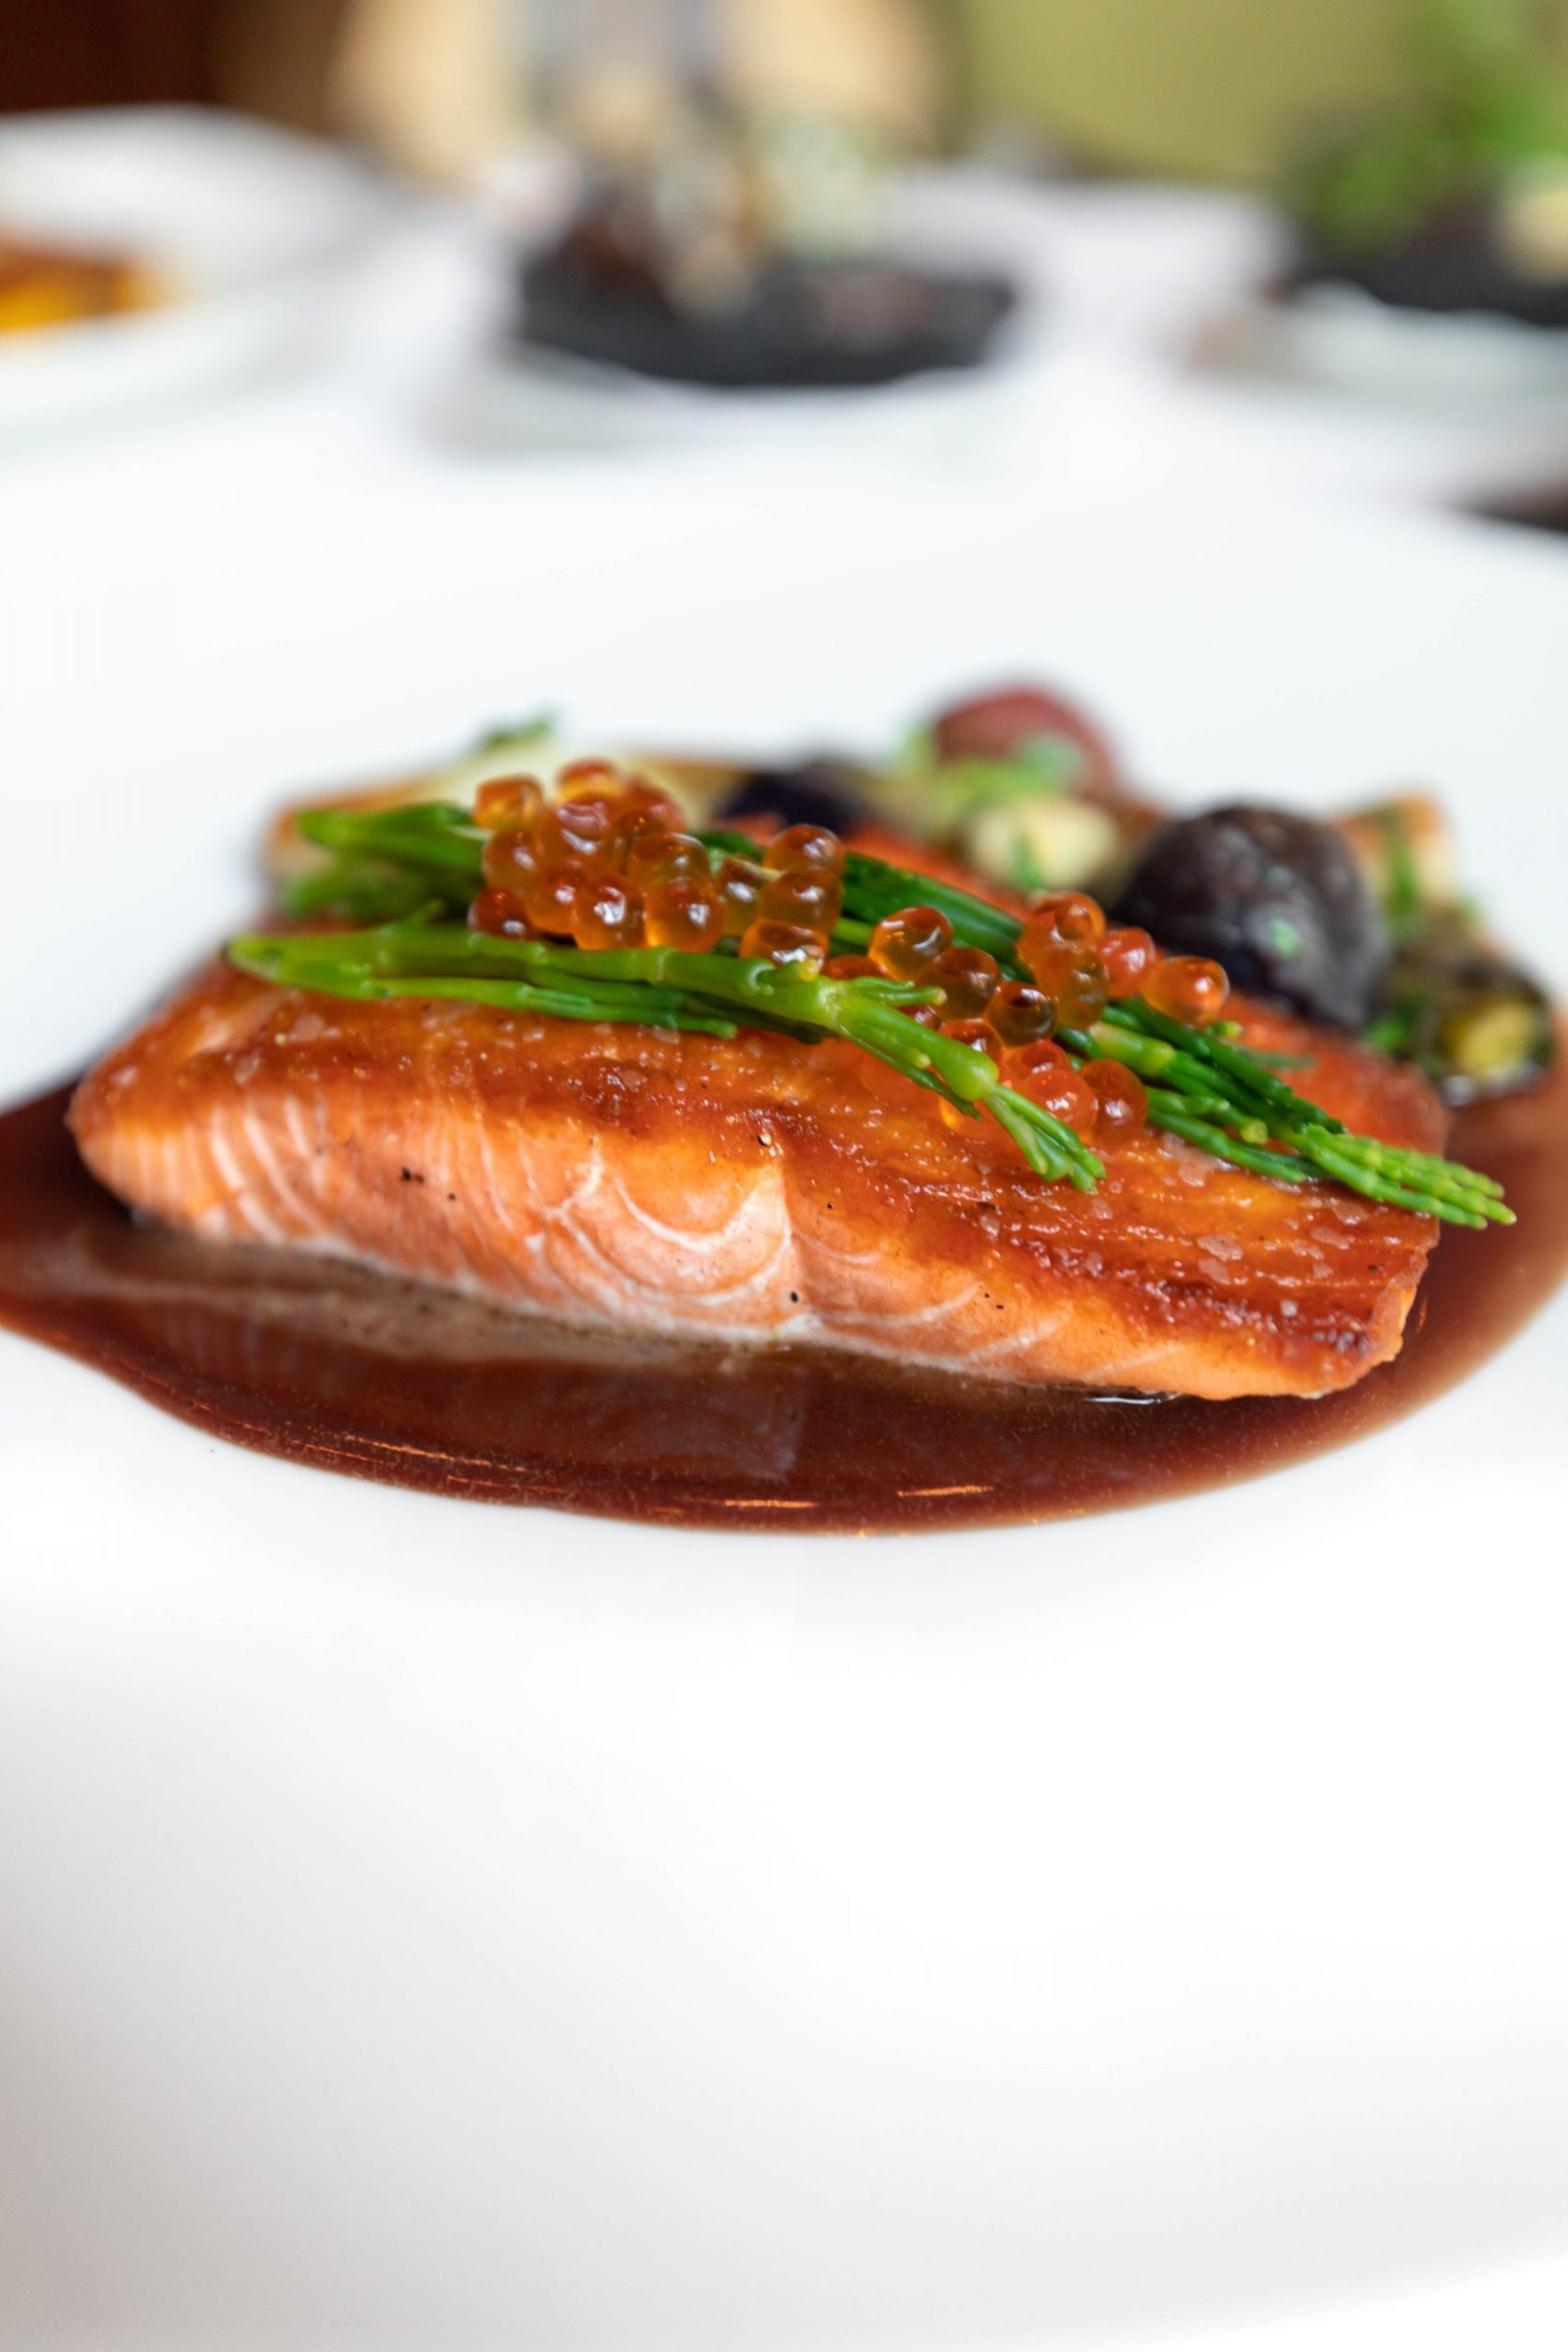 Ōra King Salmon at Charleston Grill from Chef Michelle Weaver Inside Belmond Charleston Place Luxury Hotel Written & Photographed by Annie Fairfax